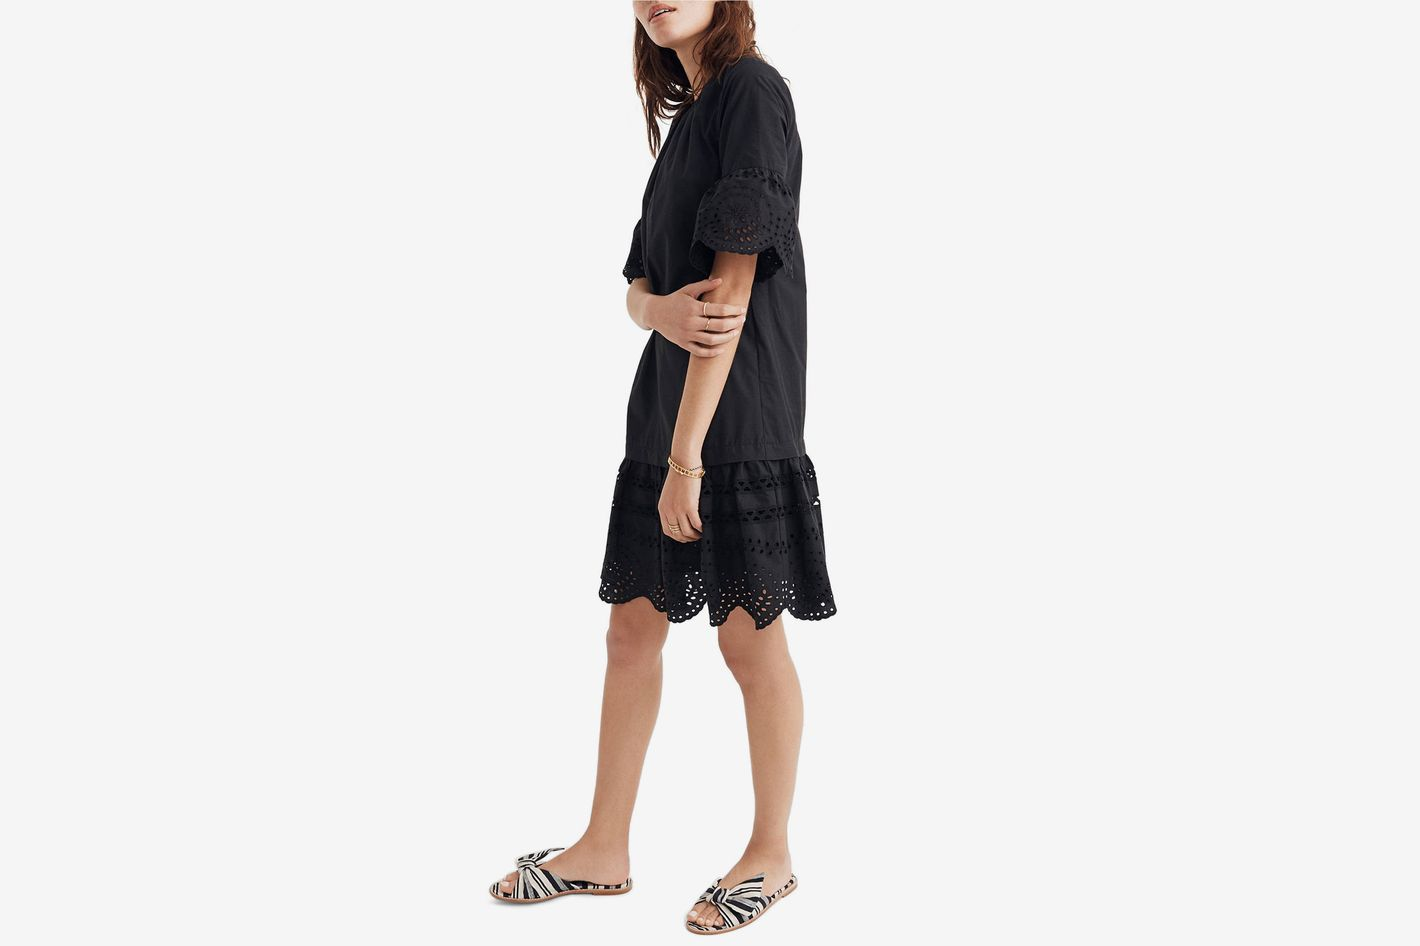 Madewell Eyelet Drop Waist Dress